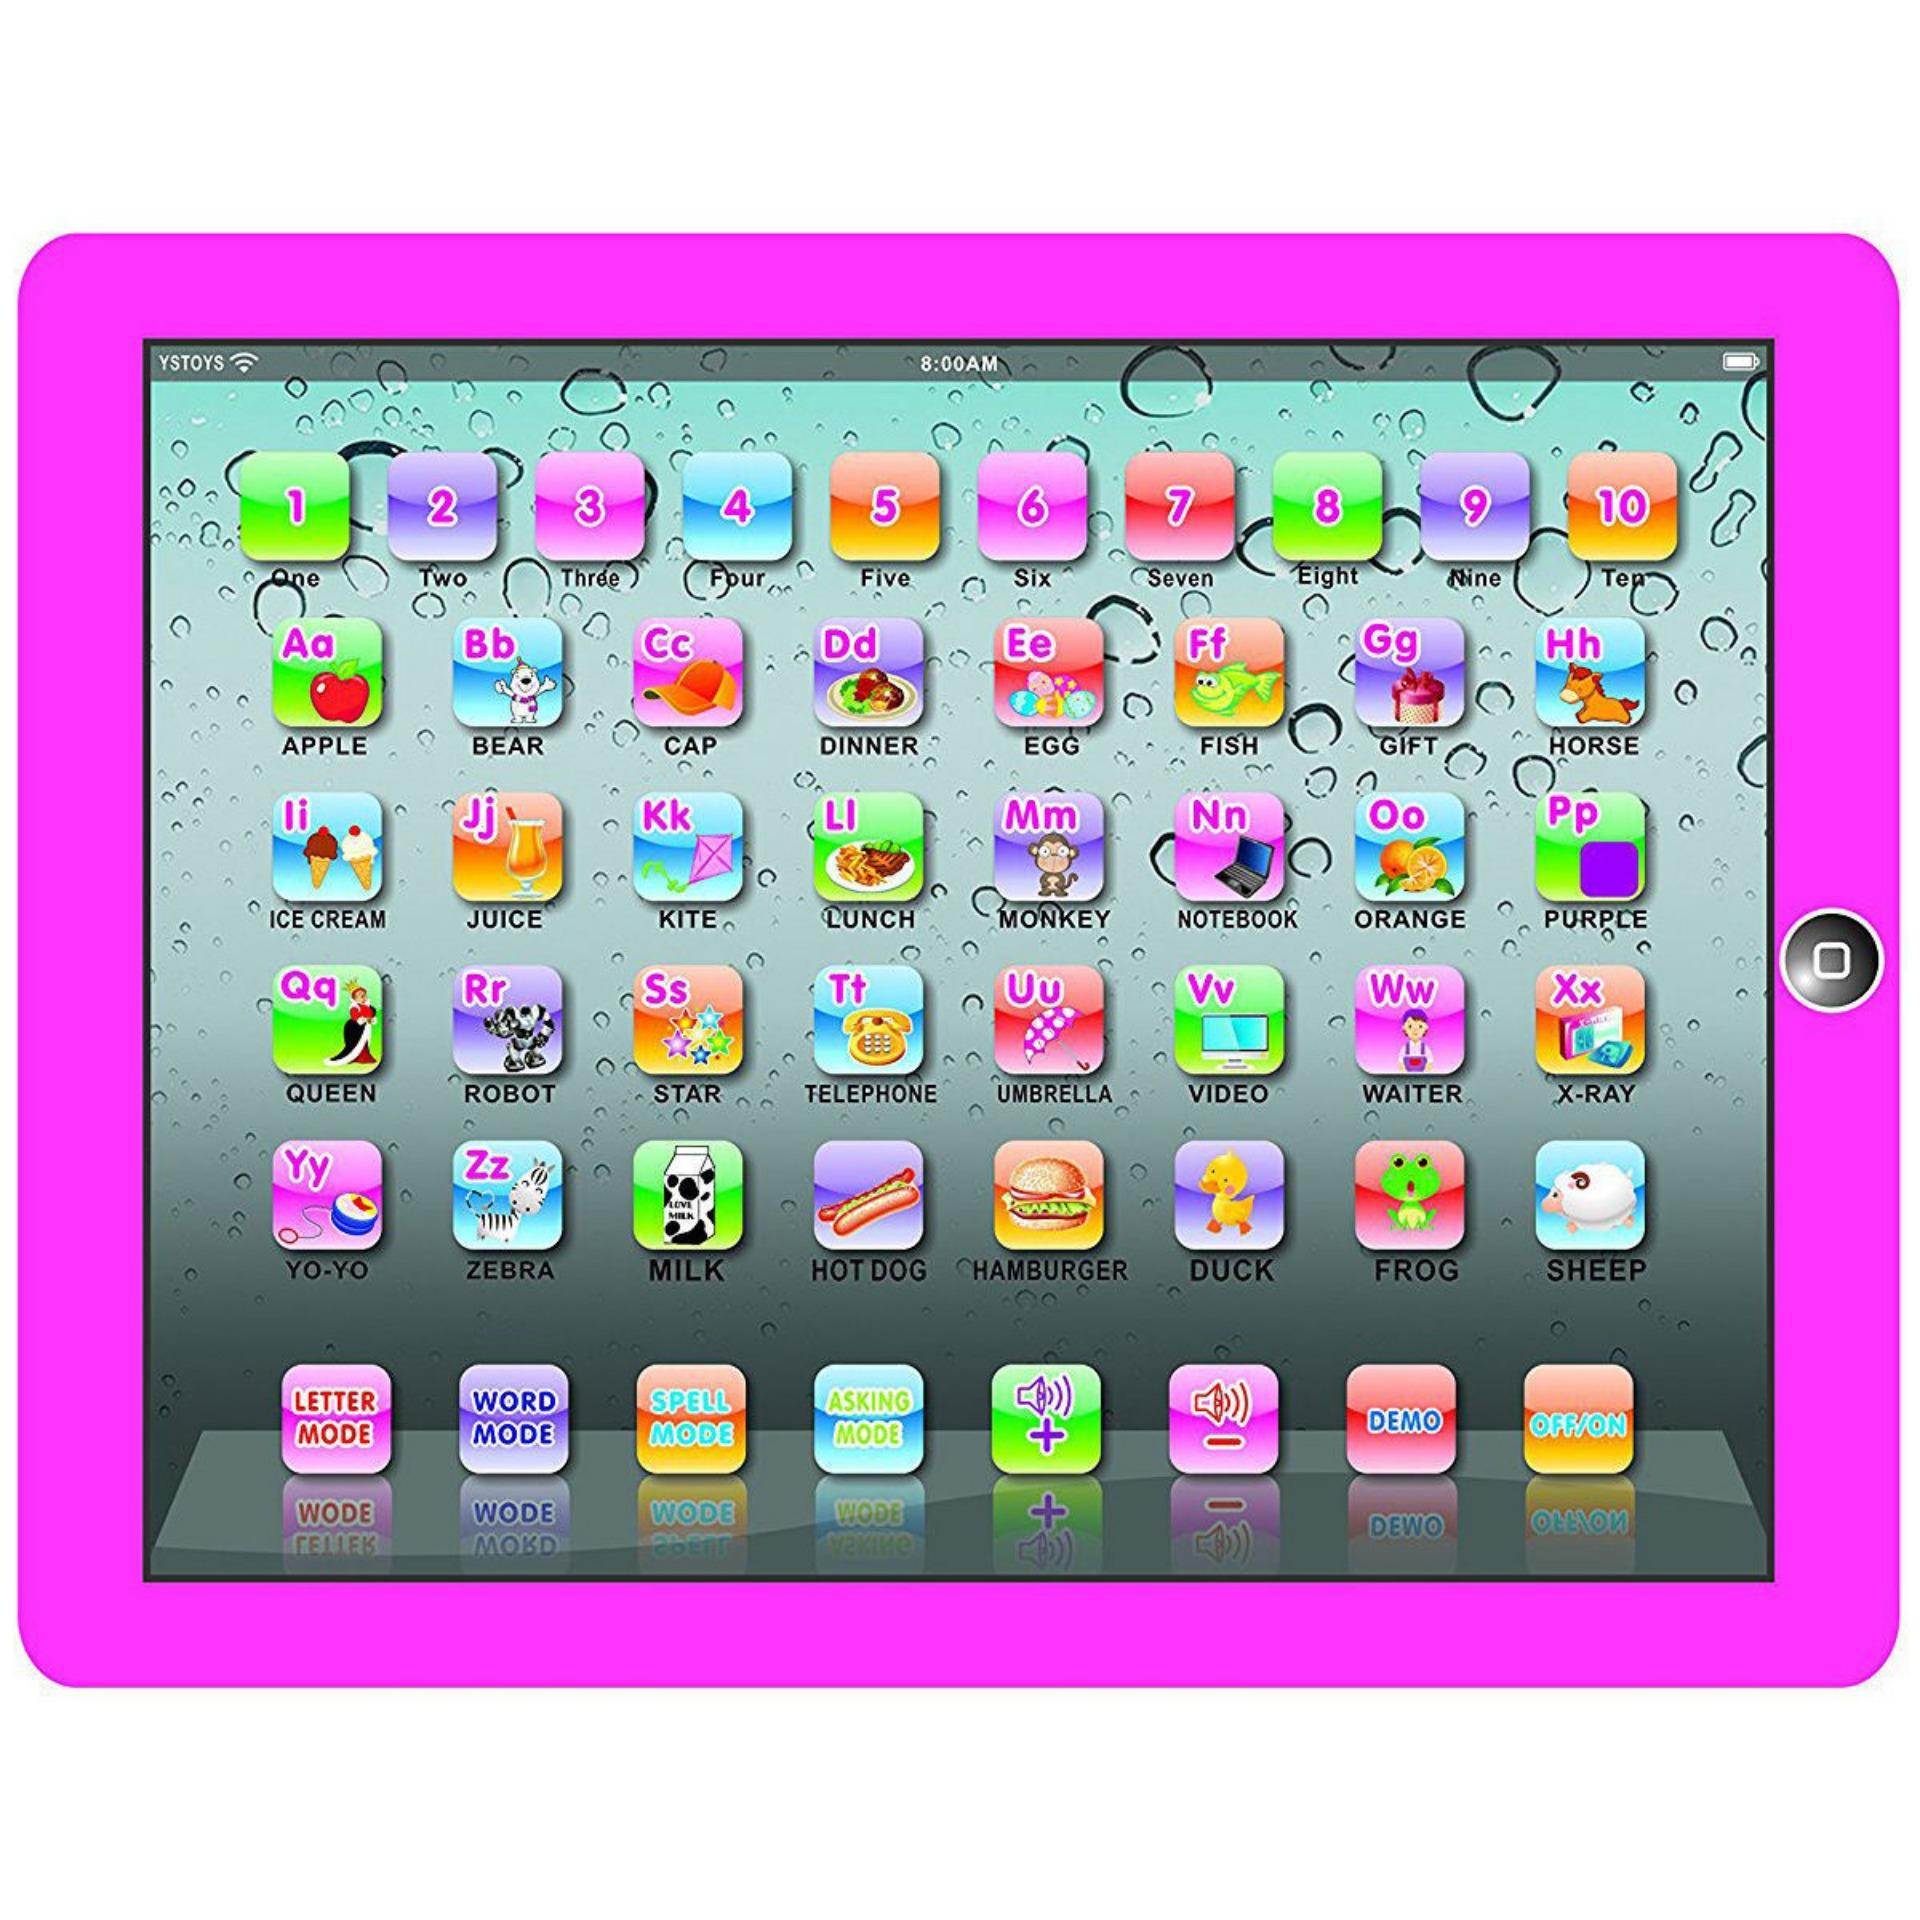 Ypad Multimedia Learning Computer Toy Tool (pink) By Mp-Keimav.